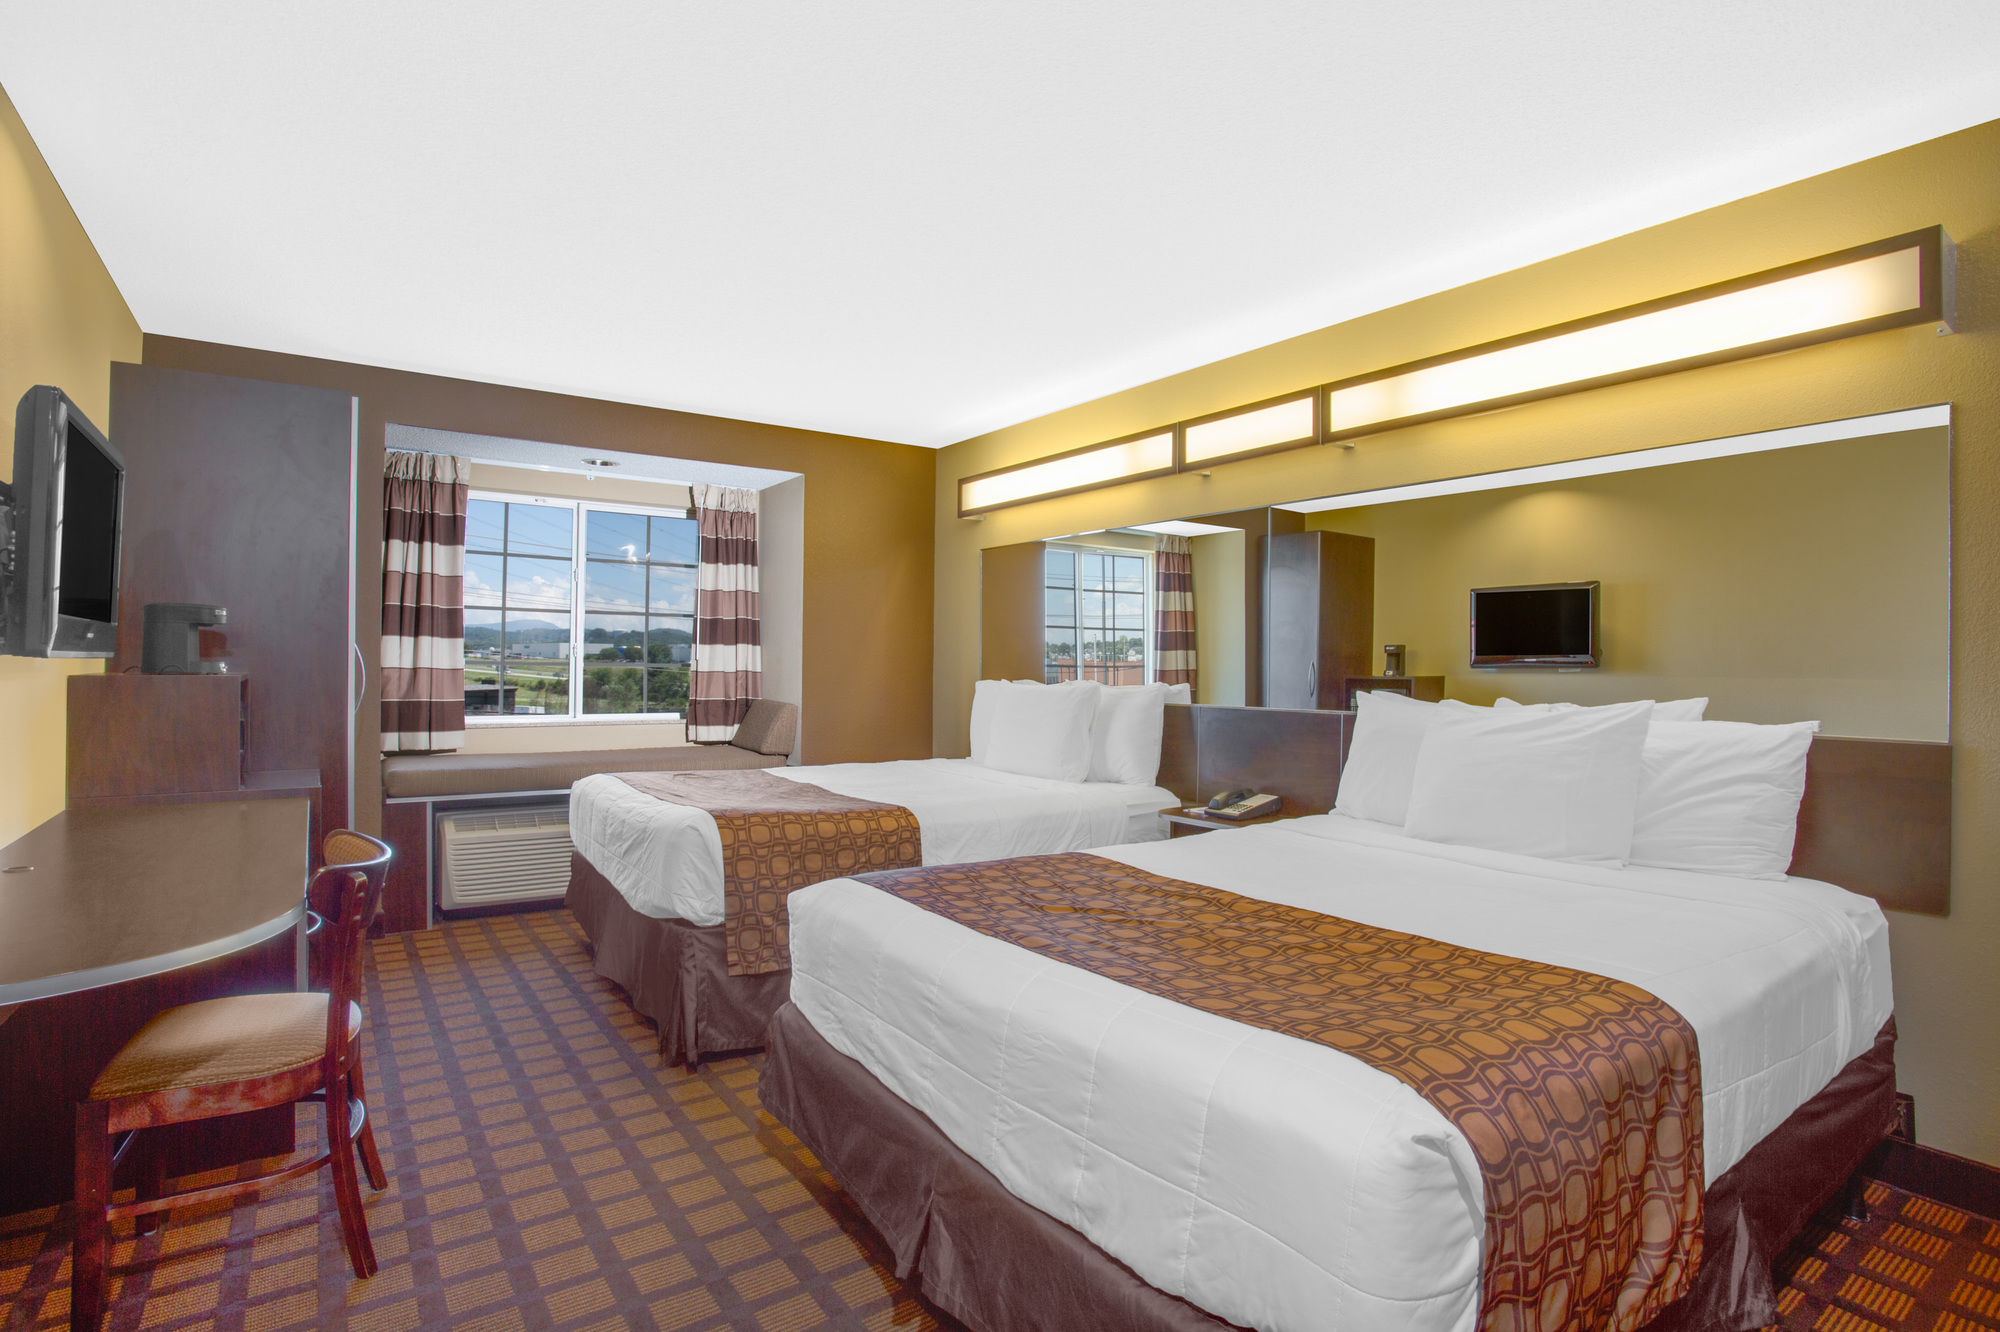 Microtel Inn & Suites by Wyndham Harrisonburg in Harrisonburg, VA